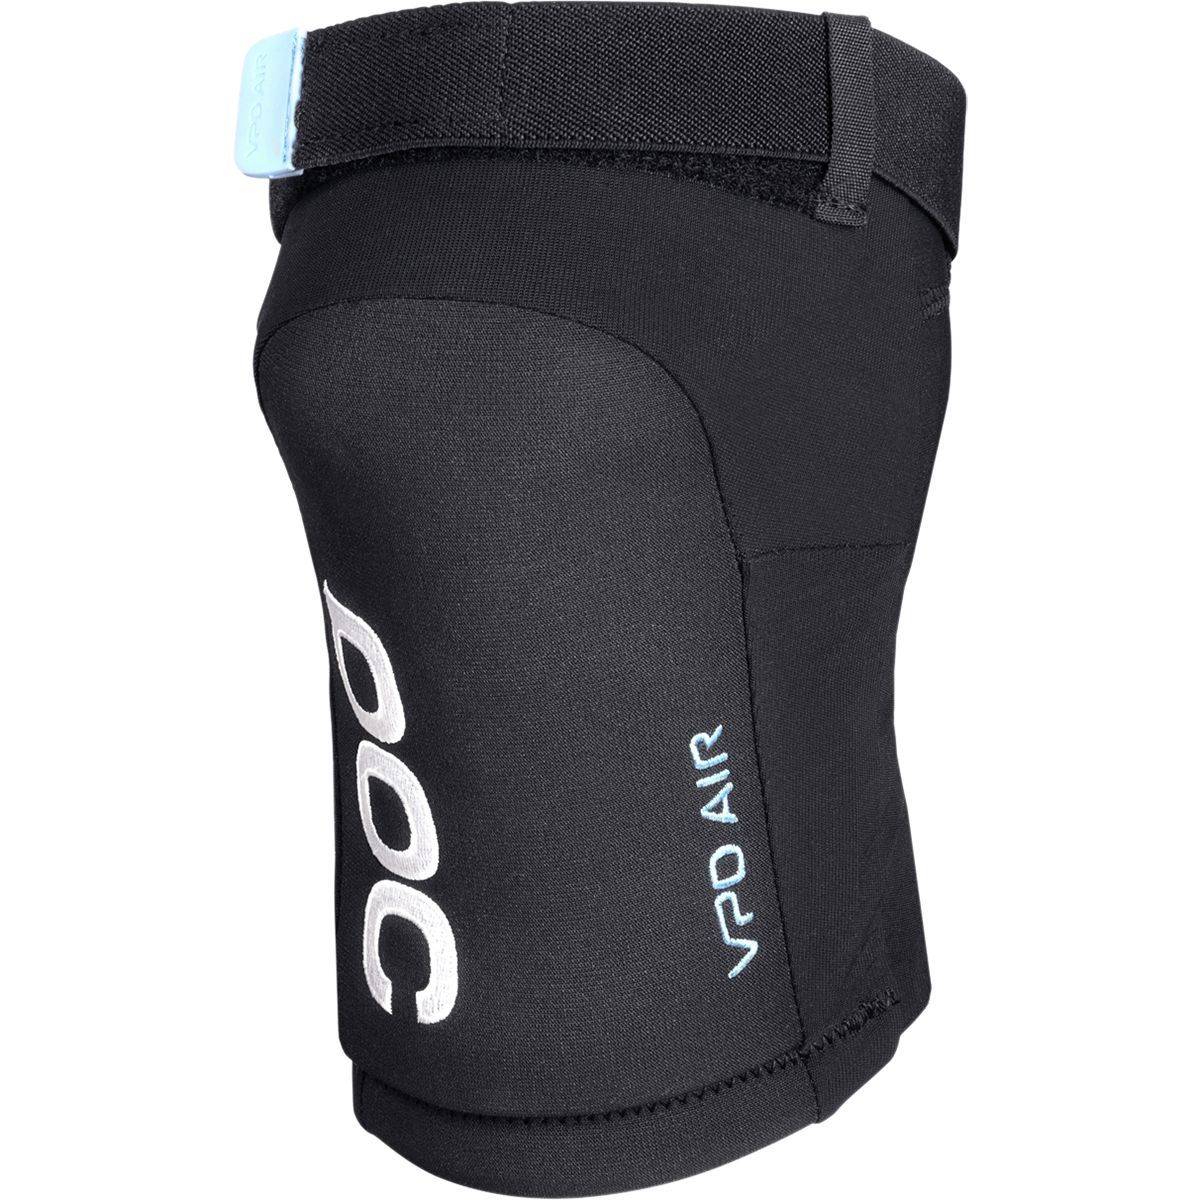 Poc Joint Vpd Air Knee Pads Best Mtb Cycling Outfit Used